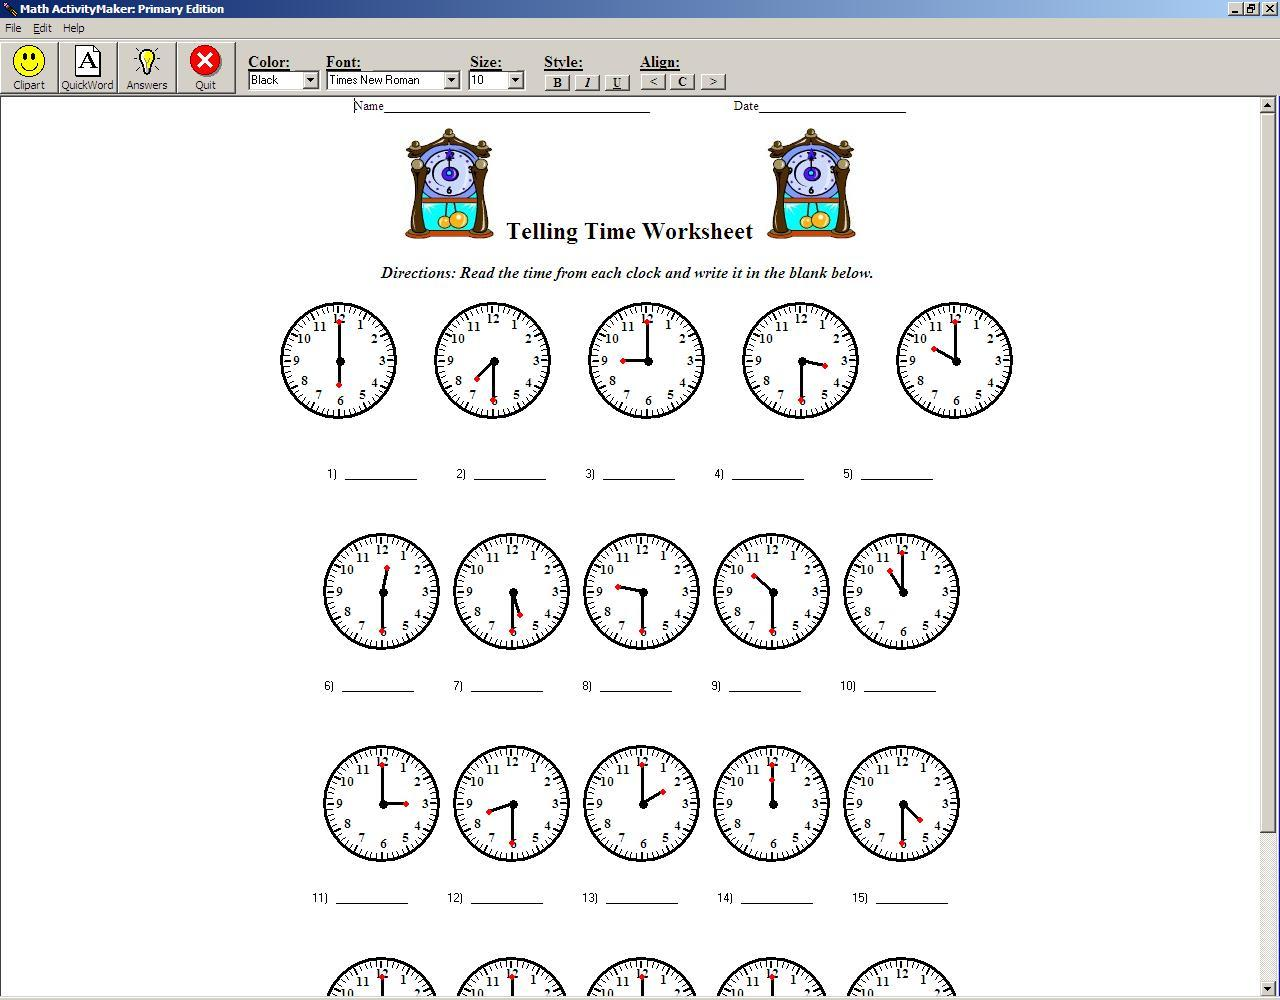 Math Activitymaker Primary Software Informer Screenshots